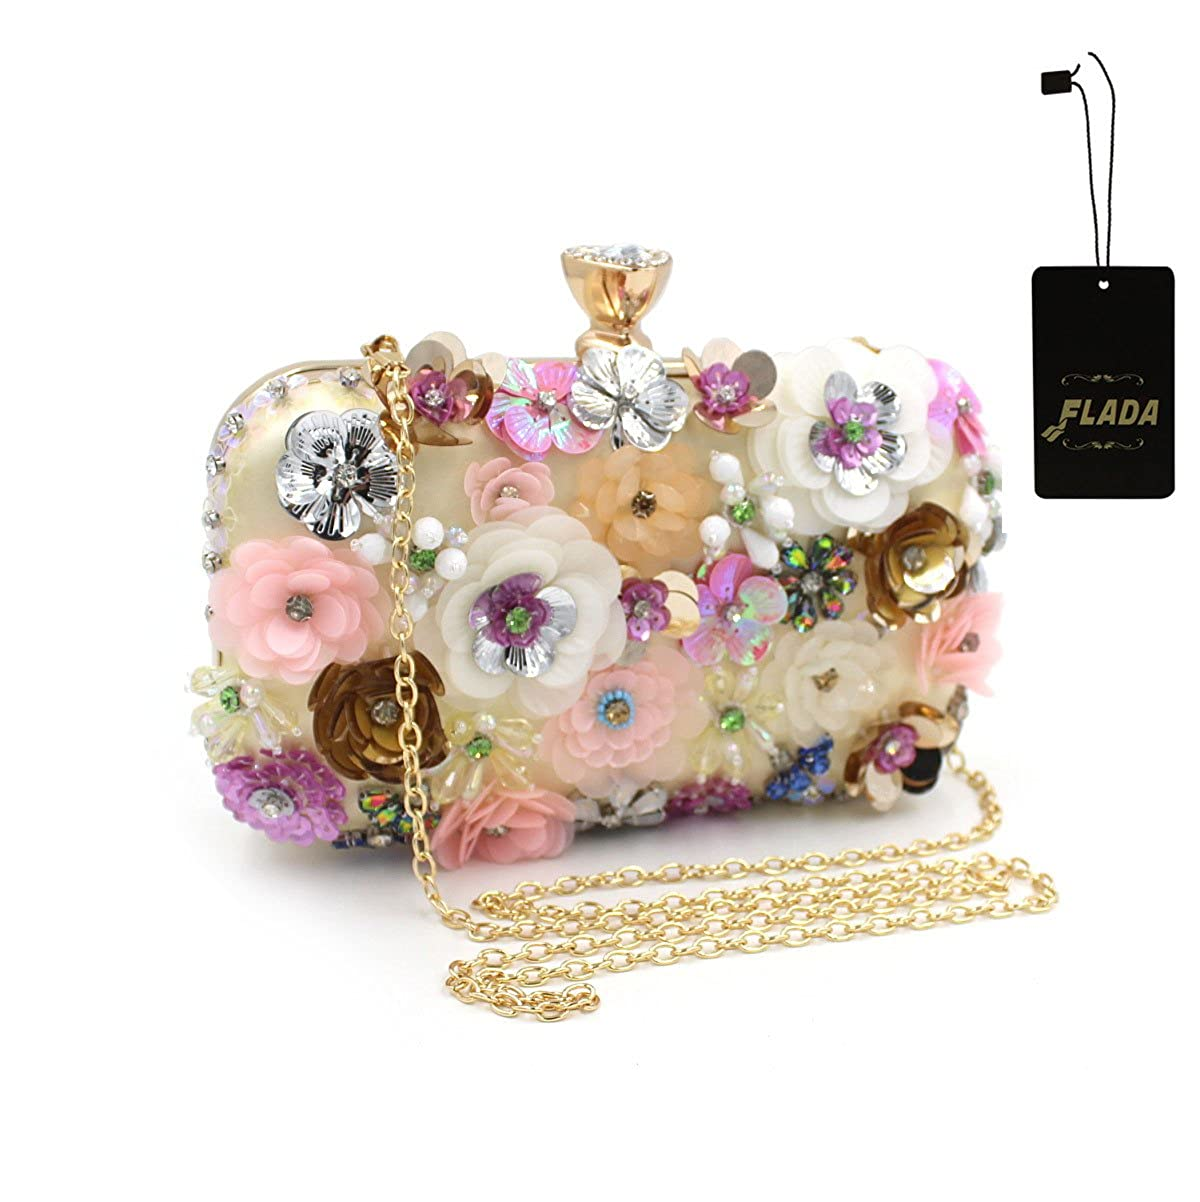 Flada Girls Colored Flowers Rhinestone Clutch Handbag Evening Prom Party Purse Bags Gold